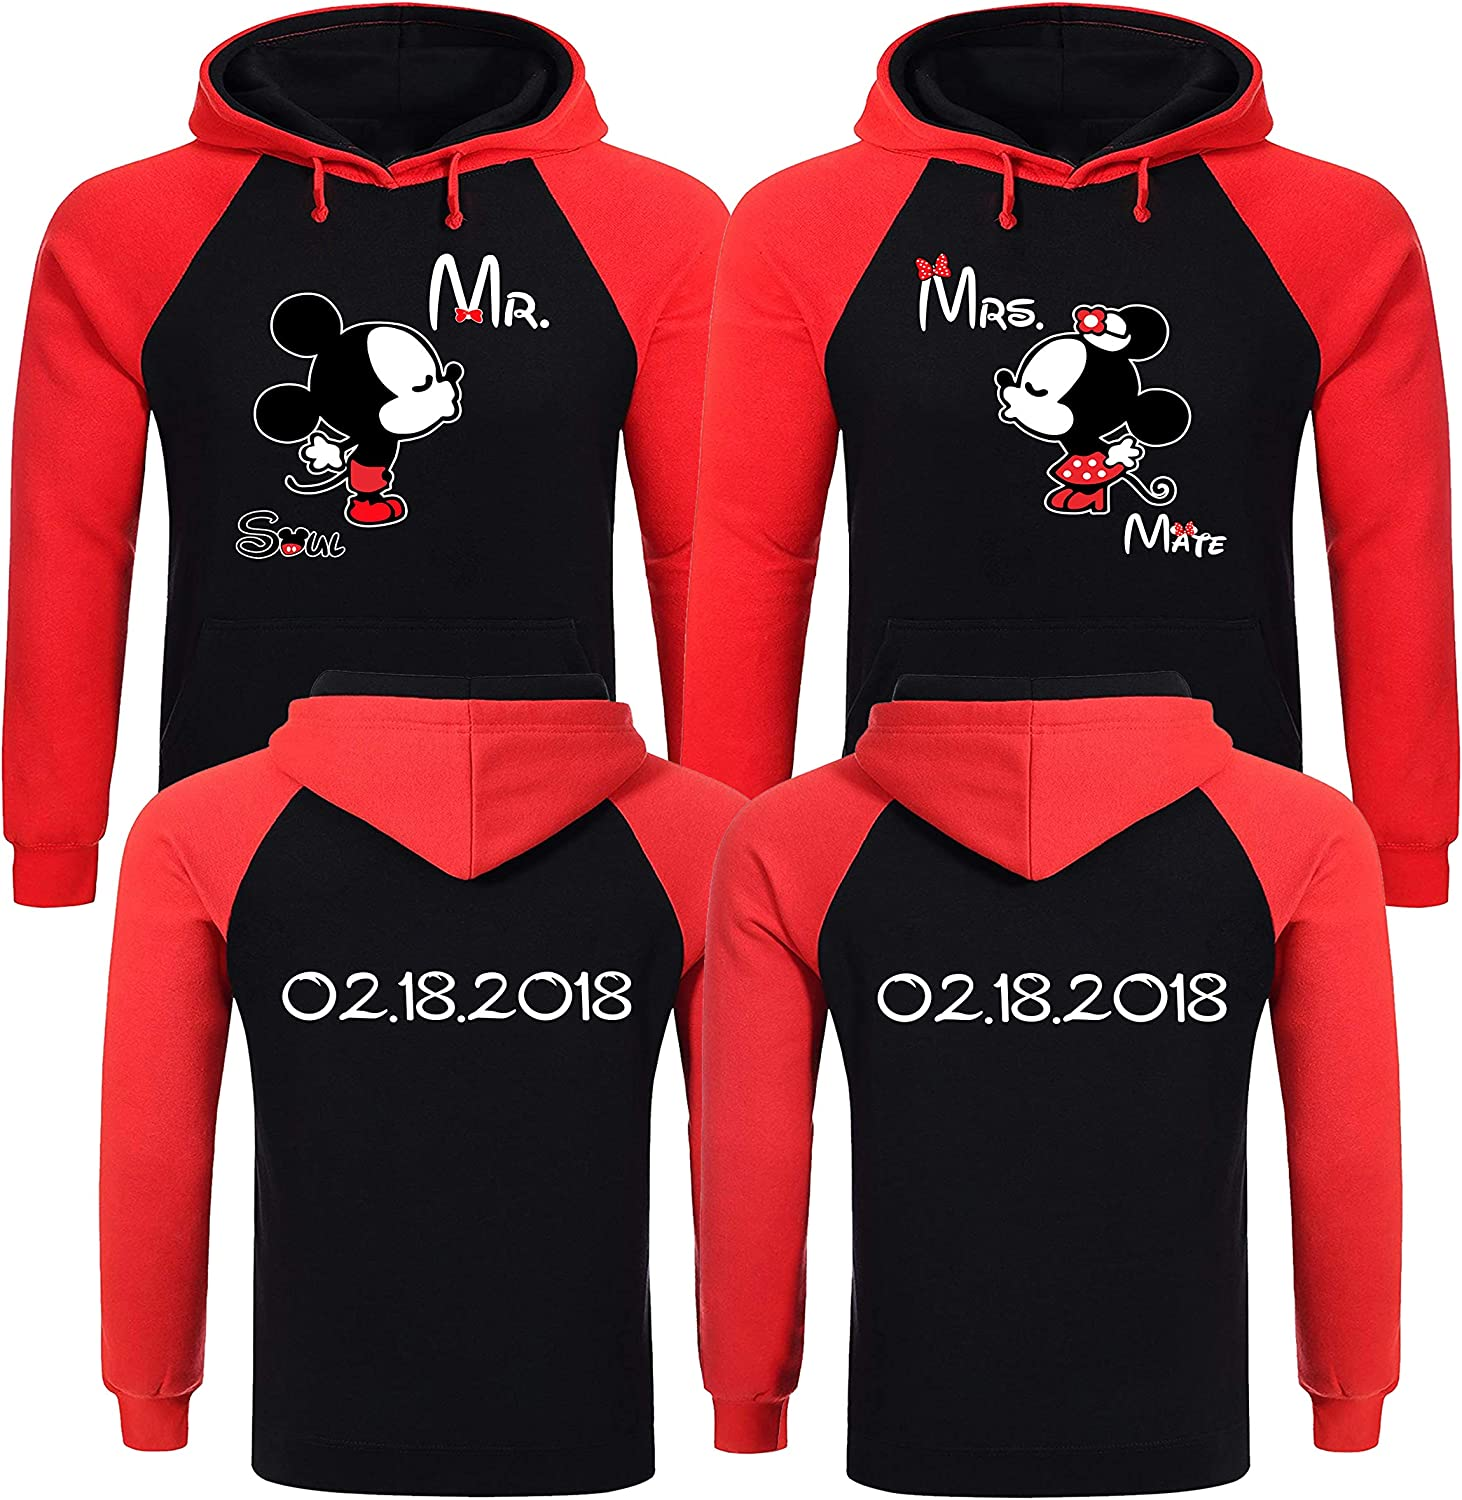 Couples Established Wedding Gifts Personalized Couple Hoodies